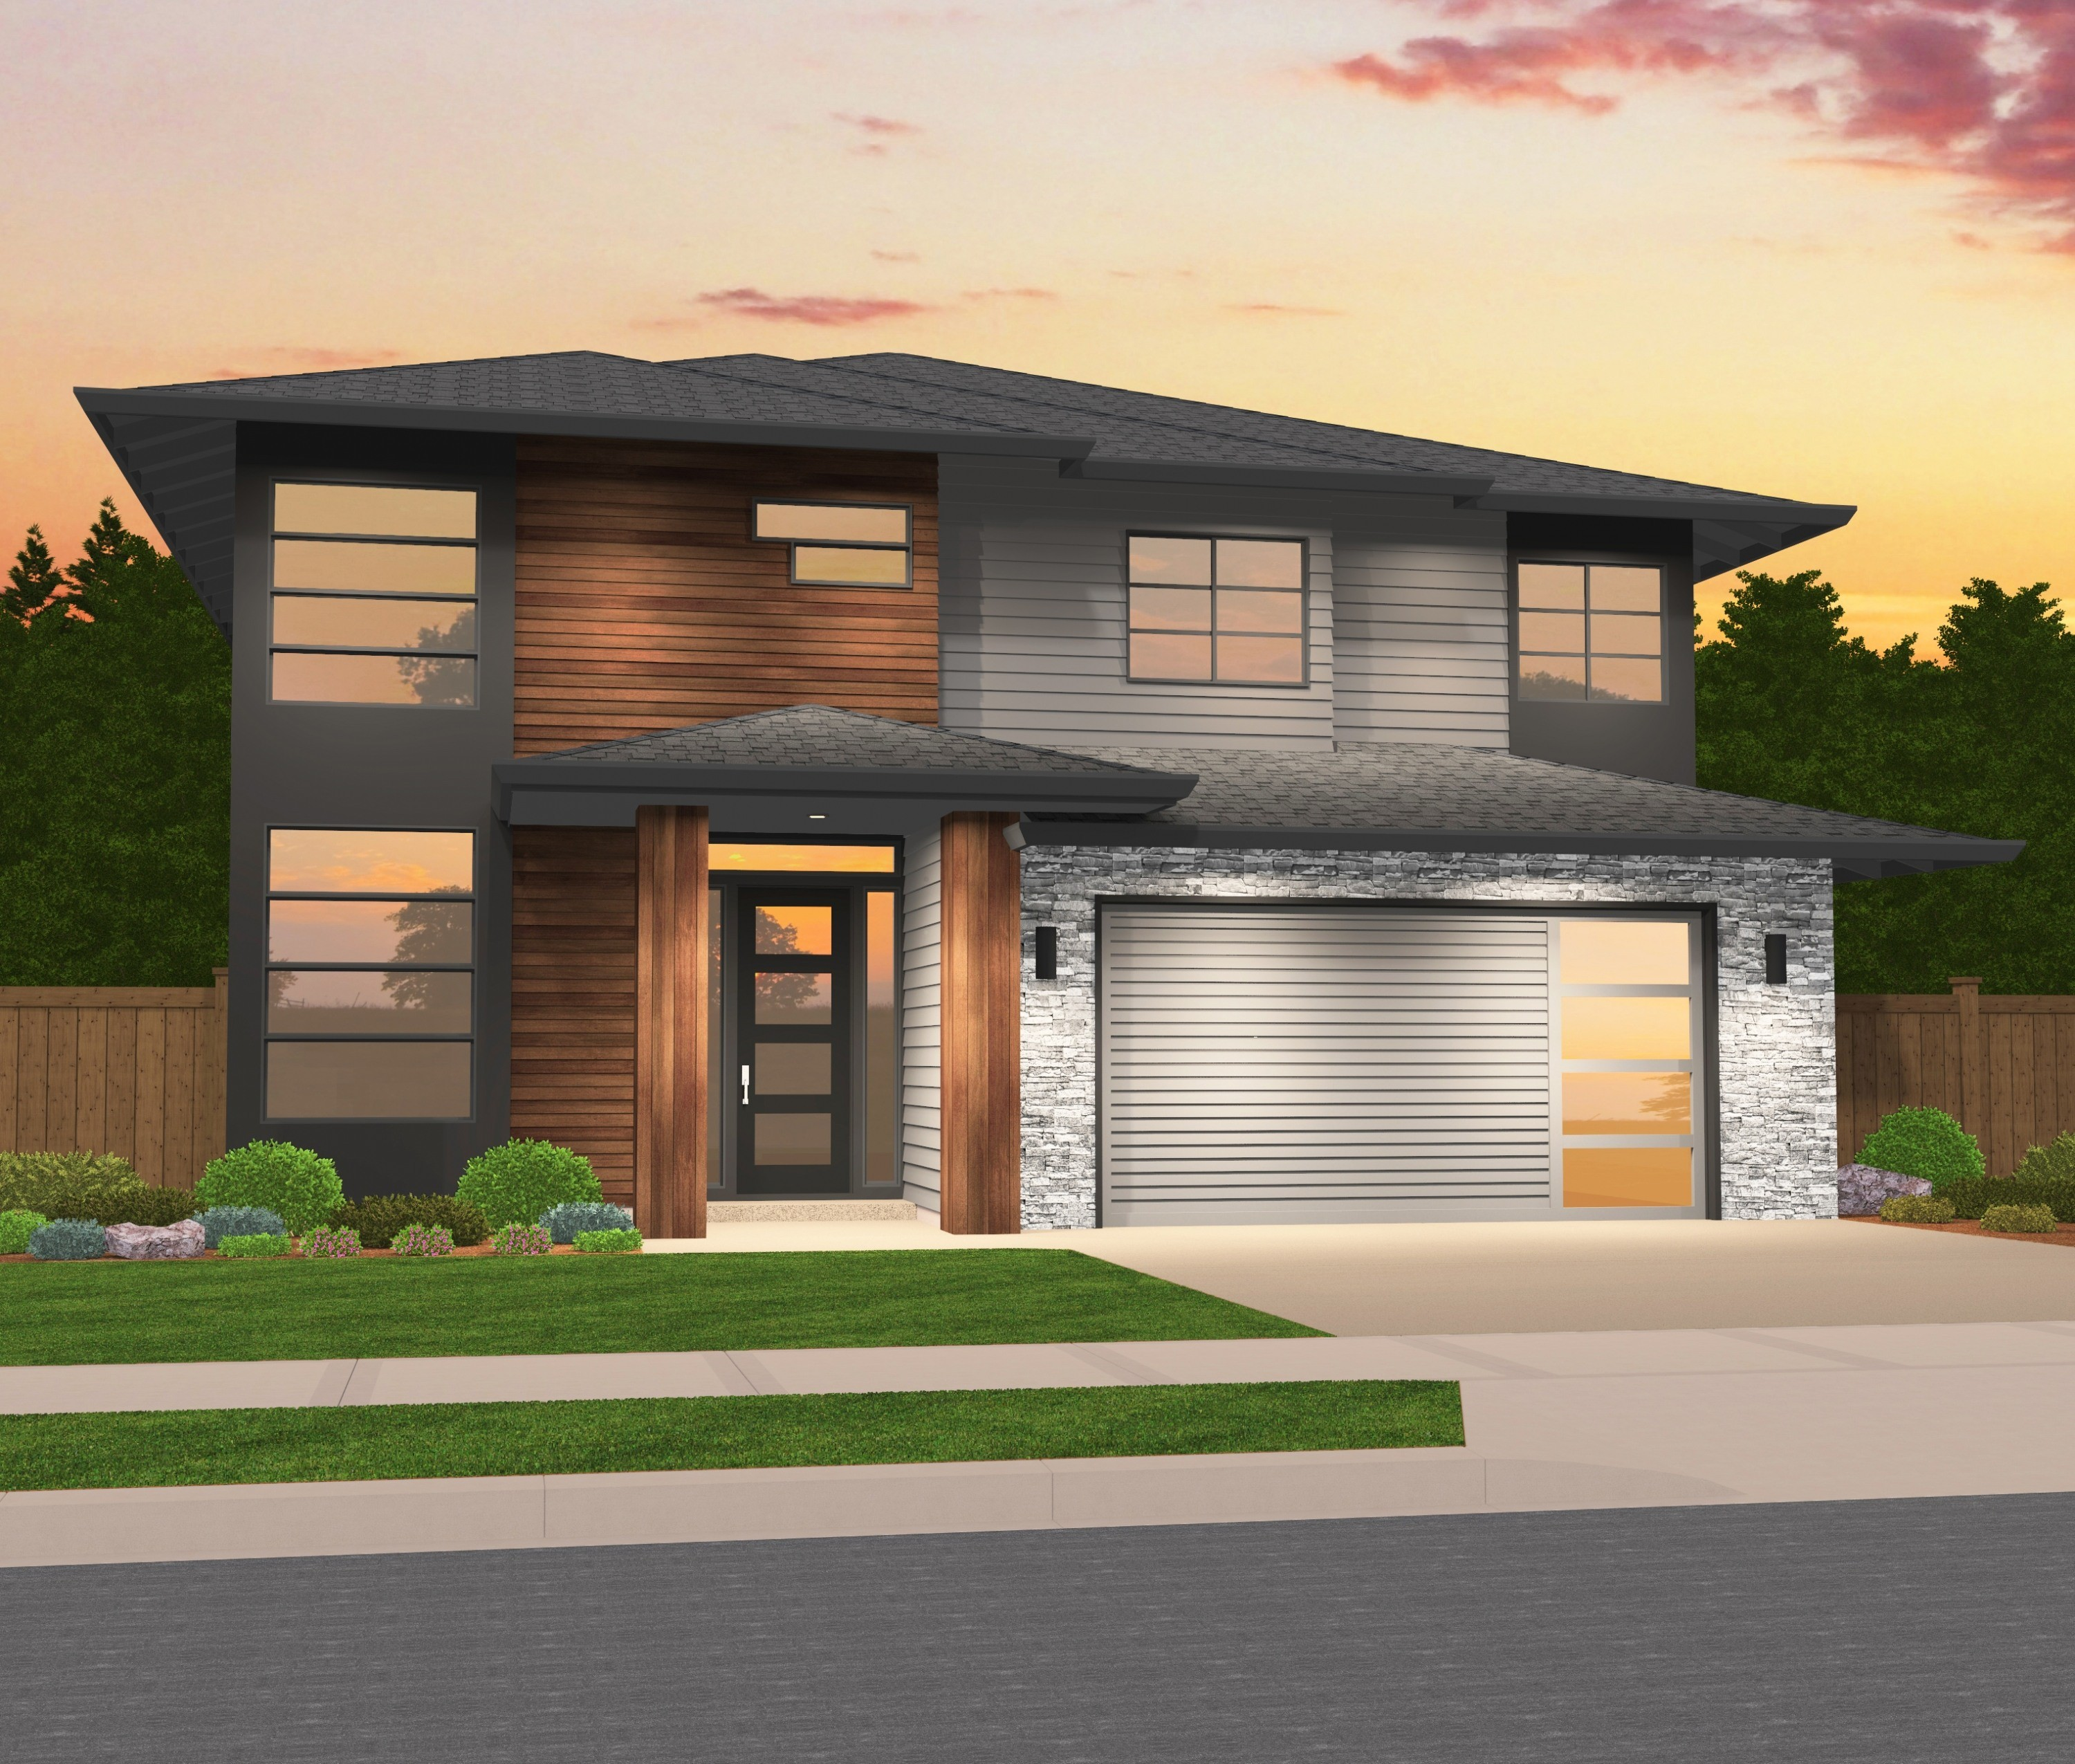 Sterling Hip Northwest Modern 2 Story on Old English Cottage Plans